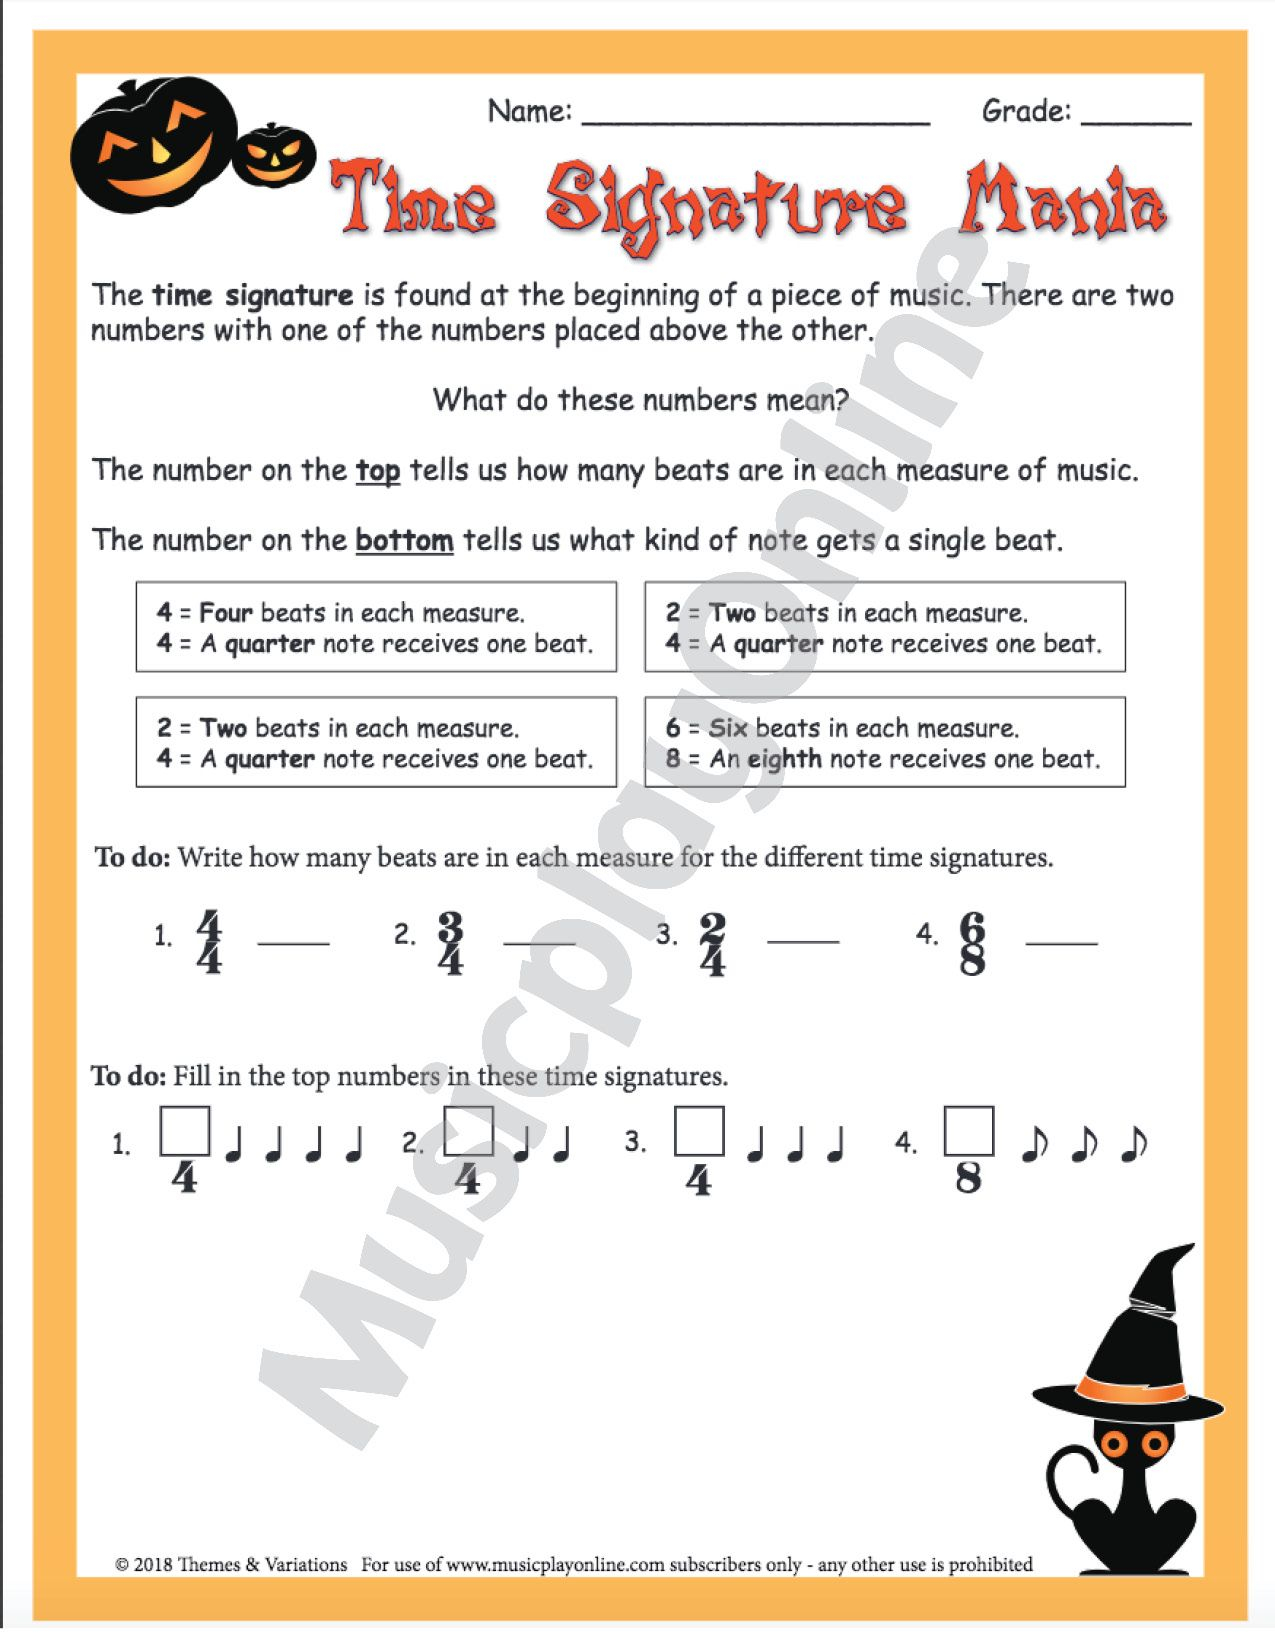 5th Grade Halloween Themed Worksheets